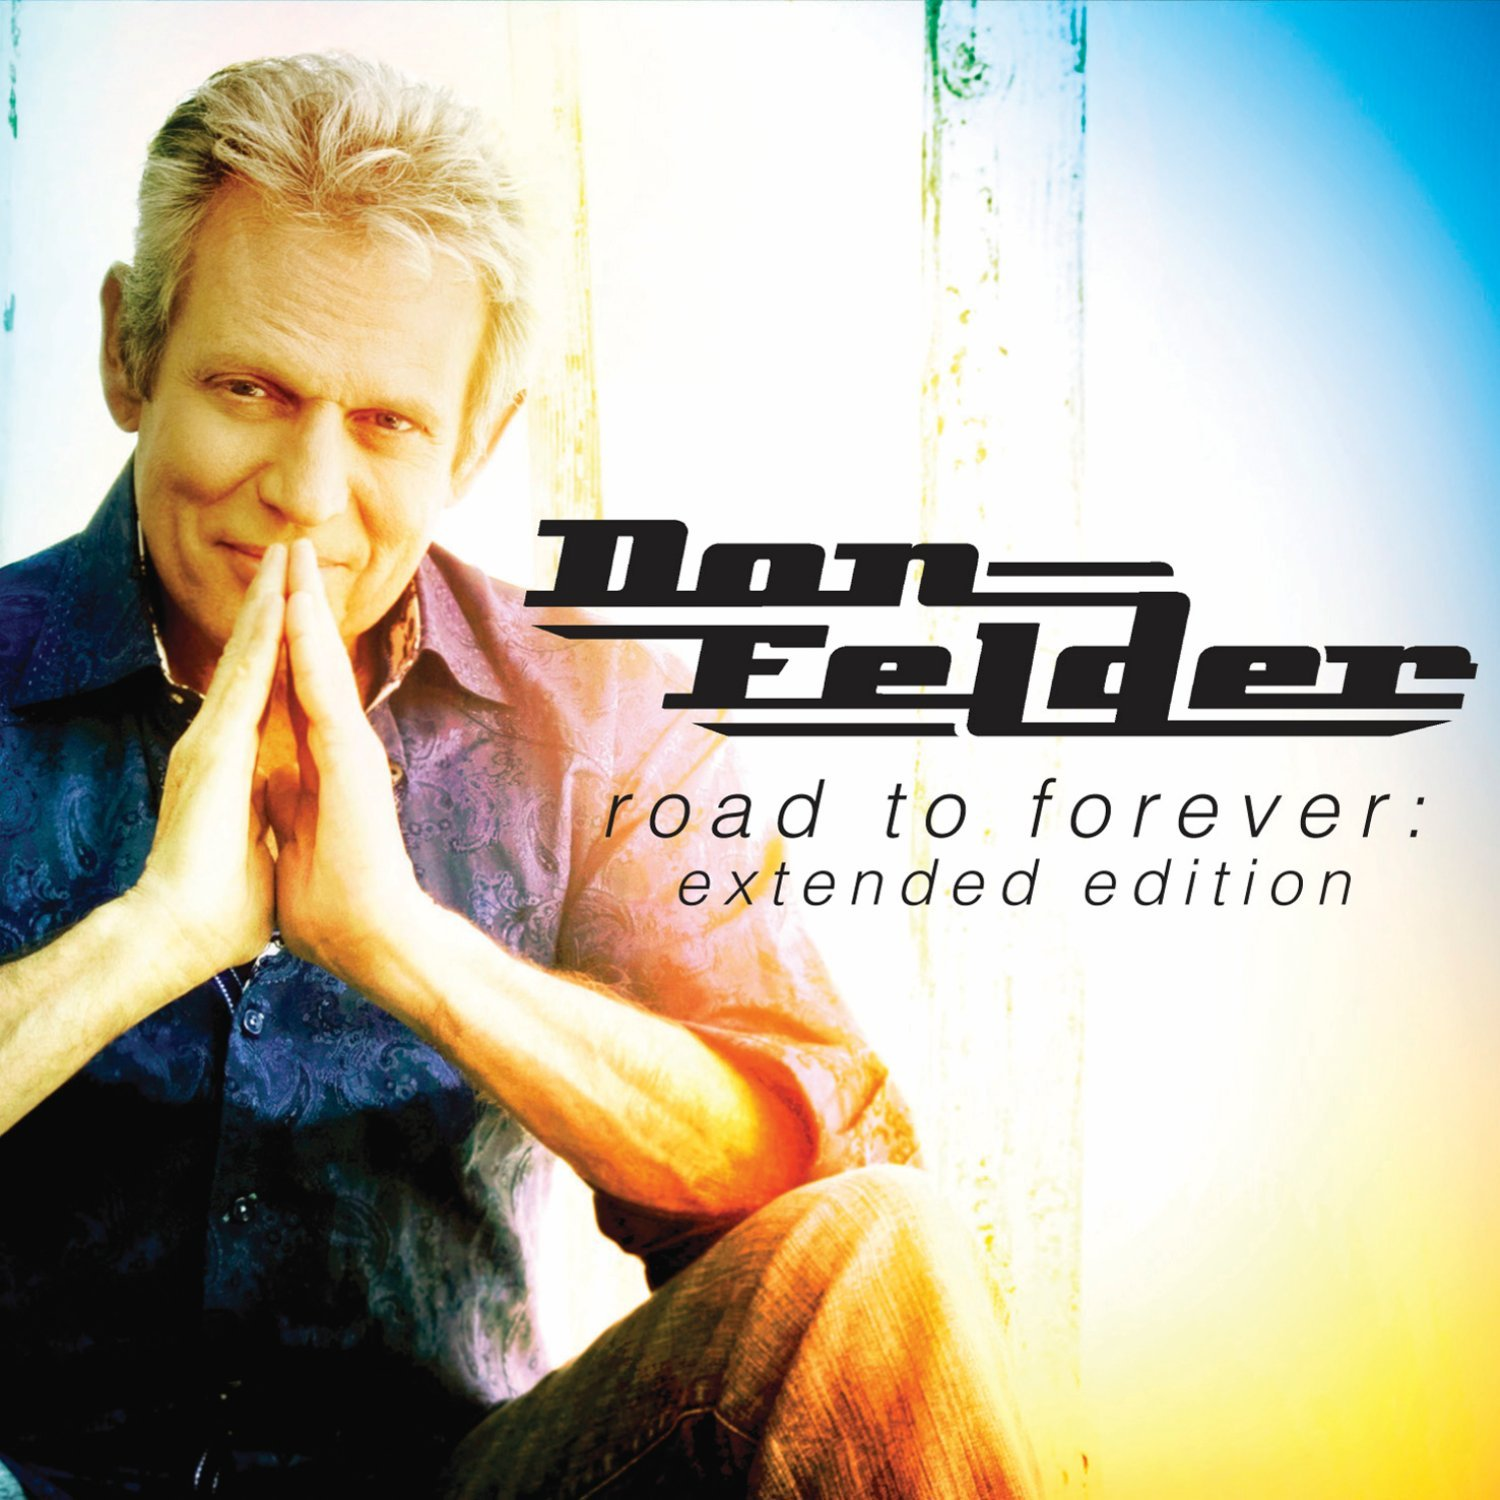 Don Felder - Road To Forever Extended Edition